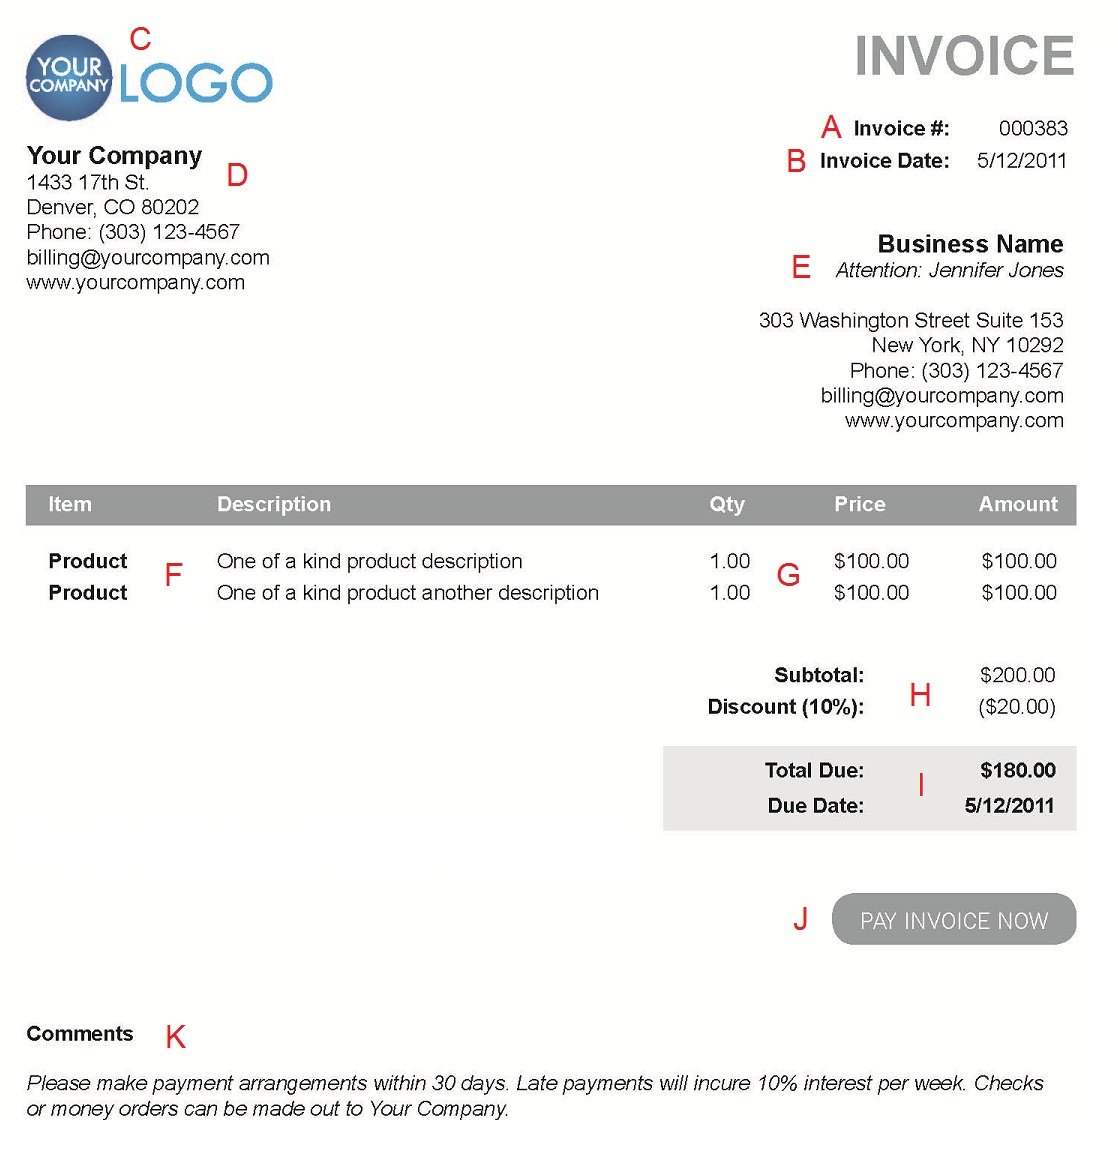 Sandiegolocksmithsus  Remarkable The  Different Sections Of An Electronic Payment Invoice With Glamorous A  With Beauteous How Do I Find Dealer Invoice Price Also How To Make Up An Invoice In Addition Invoice Generator Software Free And Free Software For Invoice For Business As Well As Invoice Template For Contractors Additionally Terms And Conditions Invoice From Paysimplecom With Sandiegolocksmithsus  Glamorous The  Different Sections Of An Electronic Payment Invoice With Beauteous A  And Remarkable How Do I Find Dealer Invoice Price Also How To Make Up An Invoice In Addition Invoice Generator Software Free From Paysimplecom